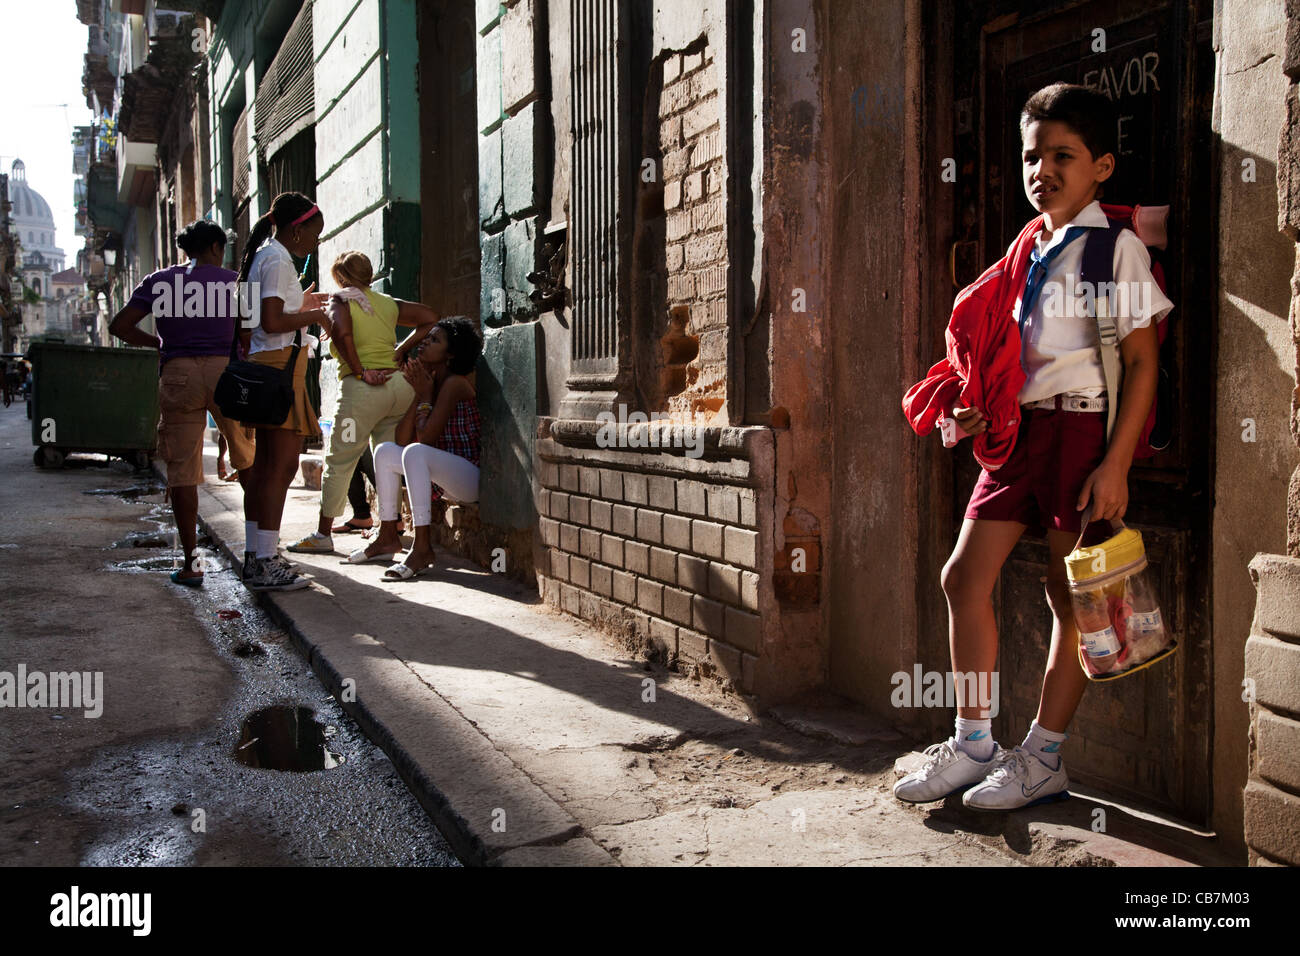 A primary student back from school, sunshine, Havana (La Habana), Cuba - Stock Image